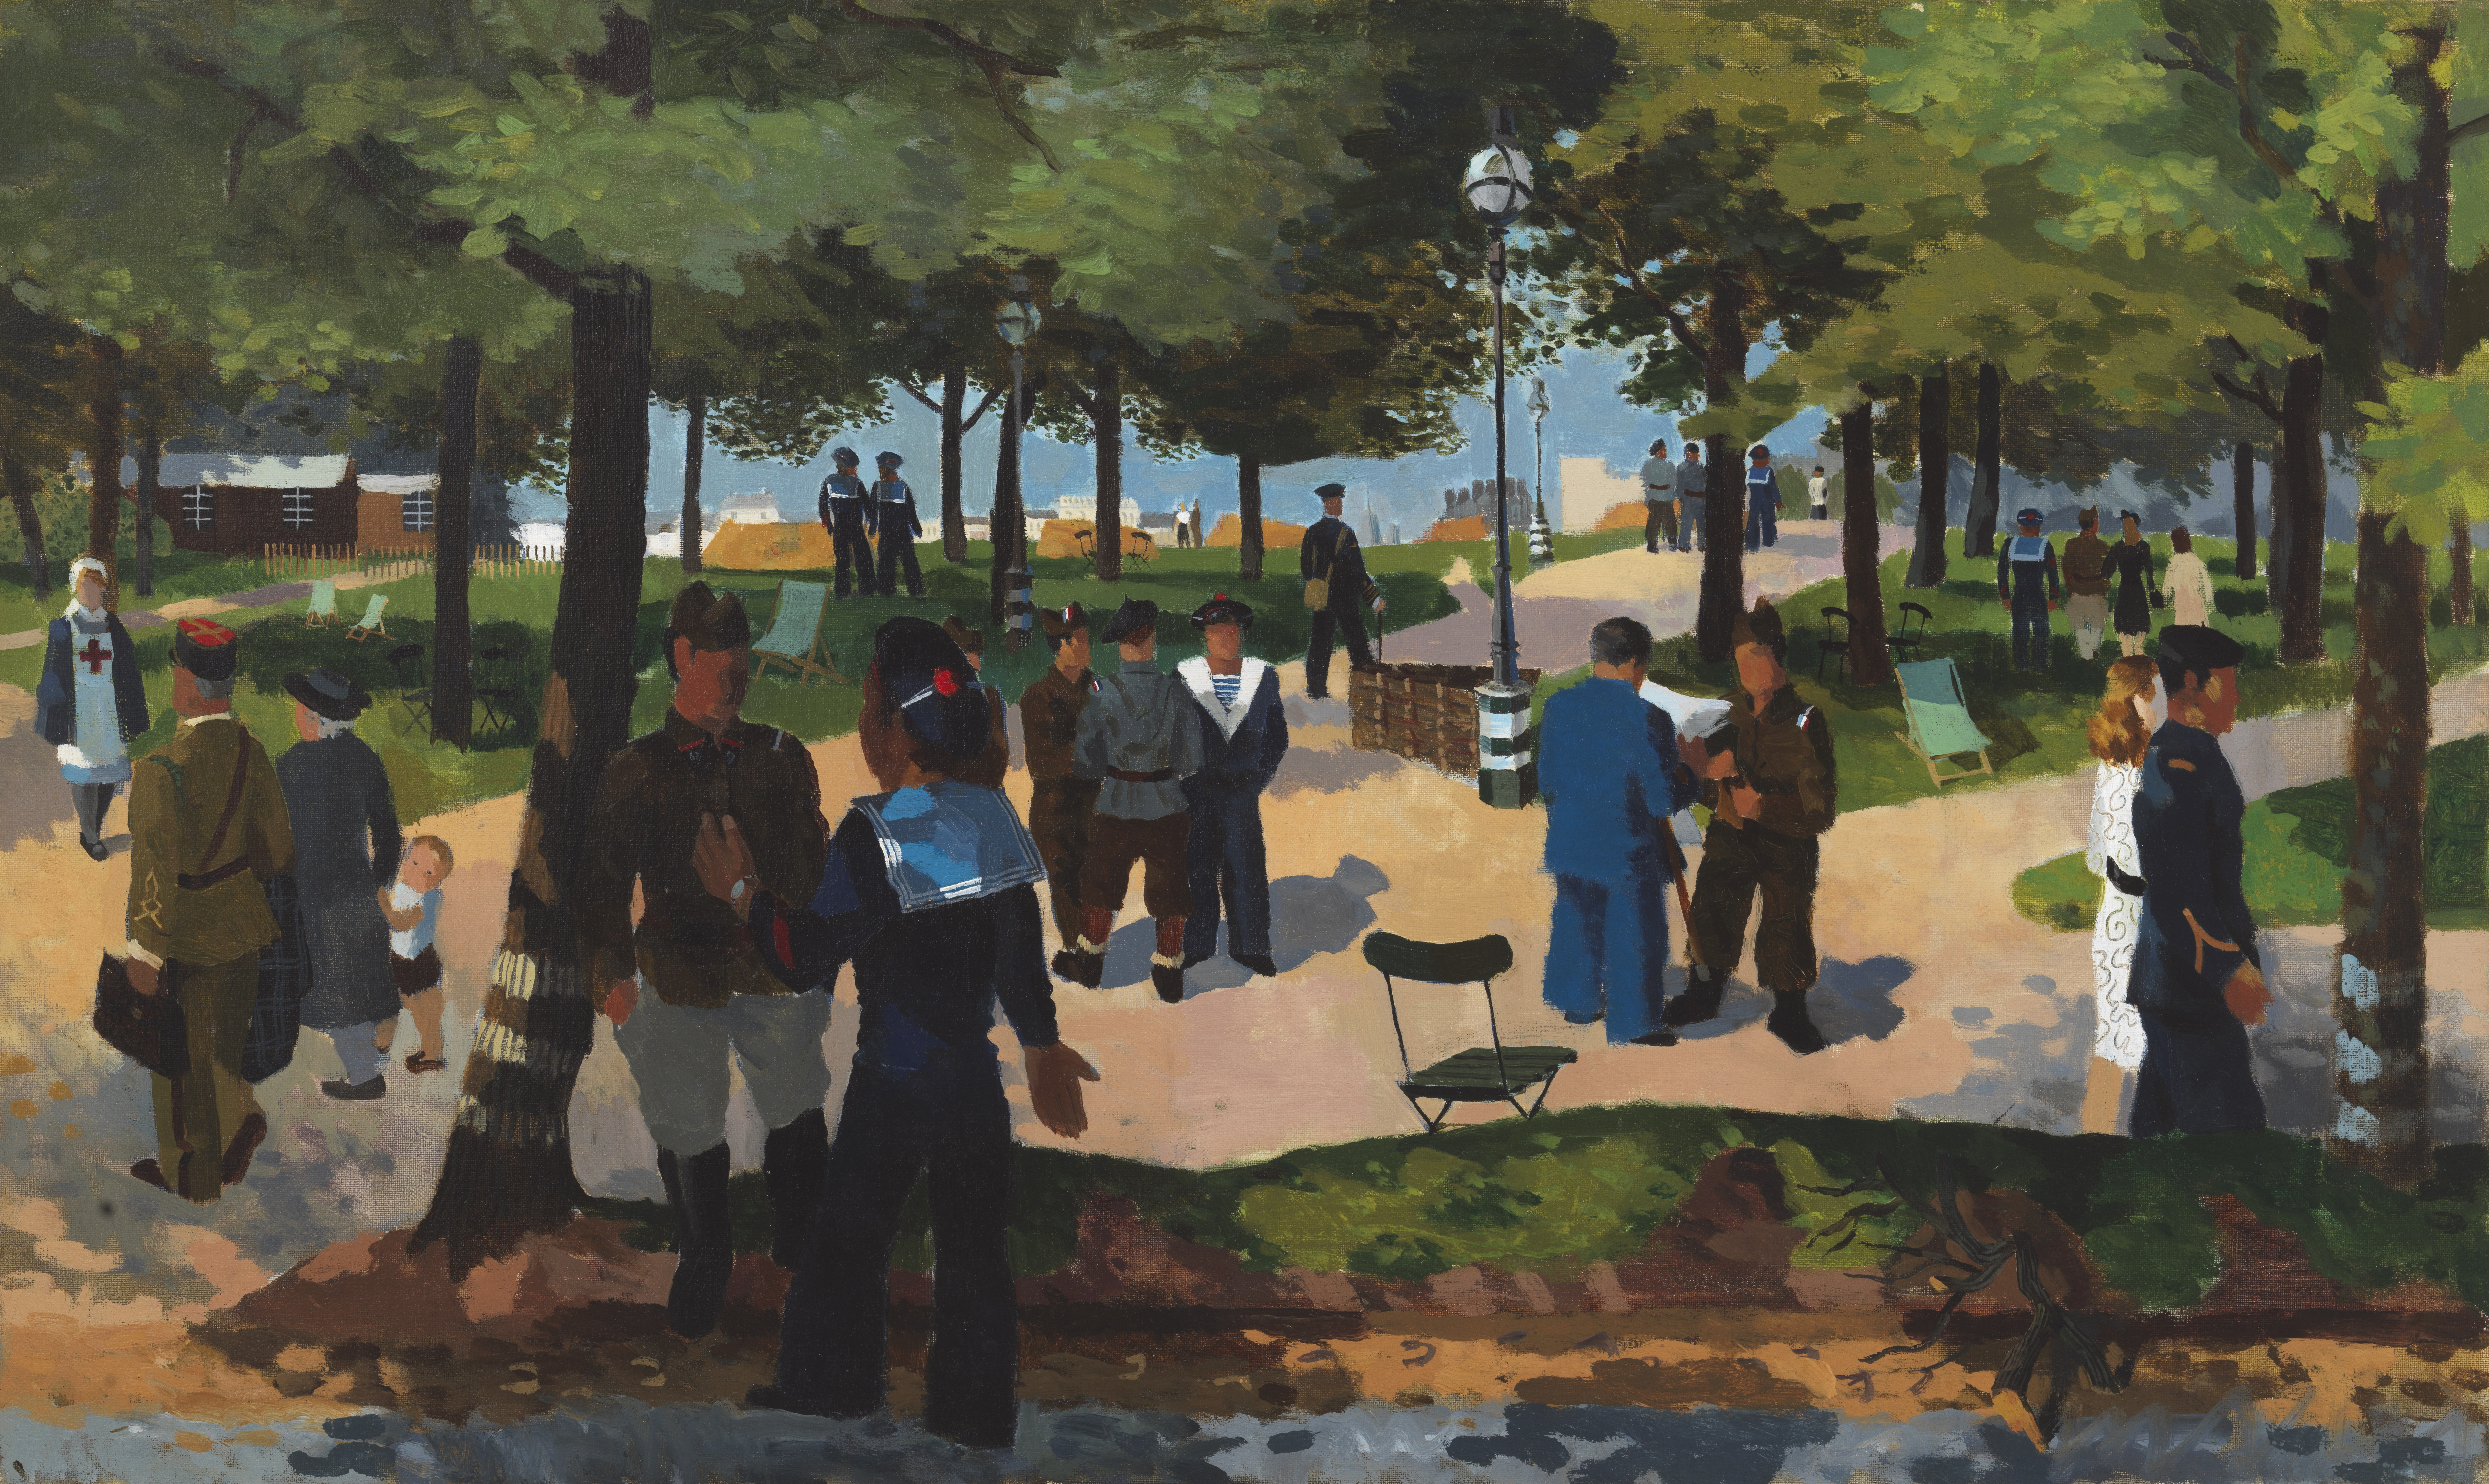 © IWM (ART LD 415) Kenneth Rowntree, Foreign Service-men in Hyde Park, Early Summer, 1940, 1940.